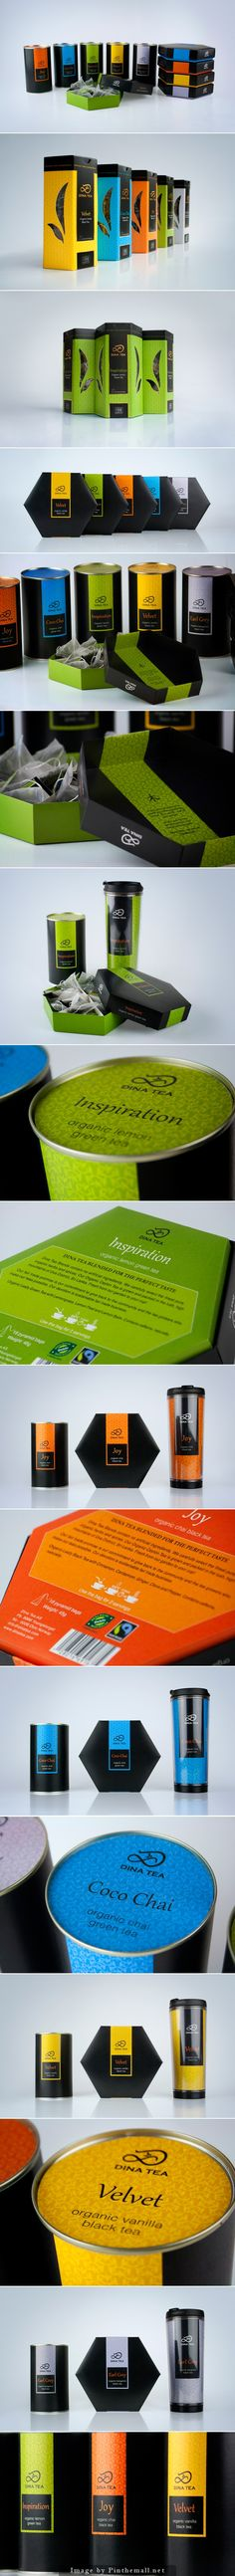 Assorted colorful emotions Dina tea #packaging curated by Packaging Diva PD created via https://www.behance.net/gallery/Dina-Tea-packaging/3990889